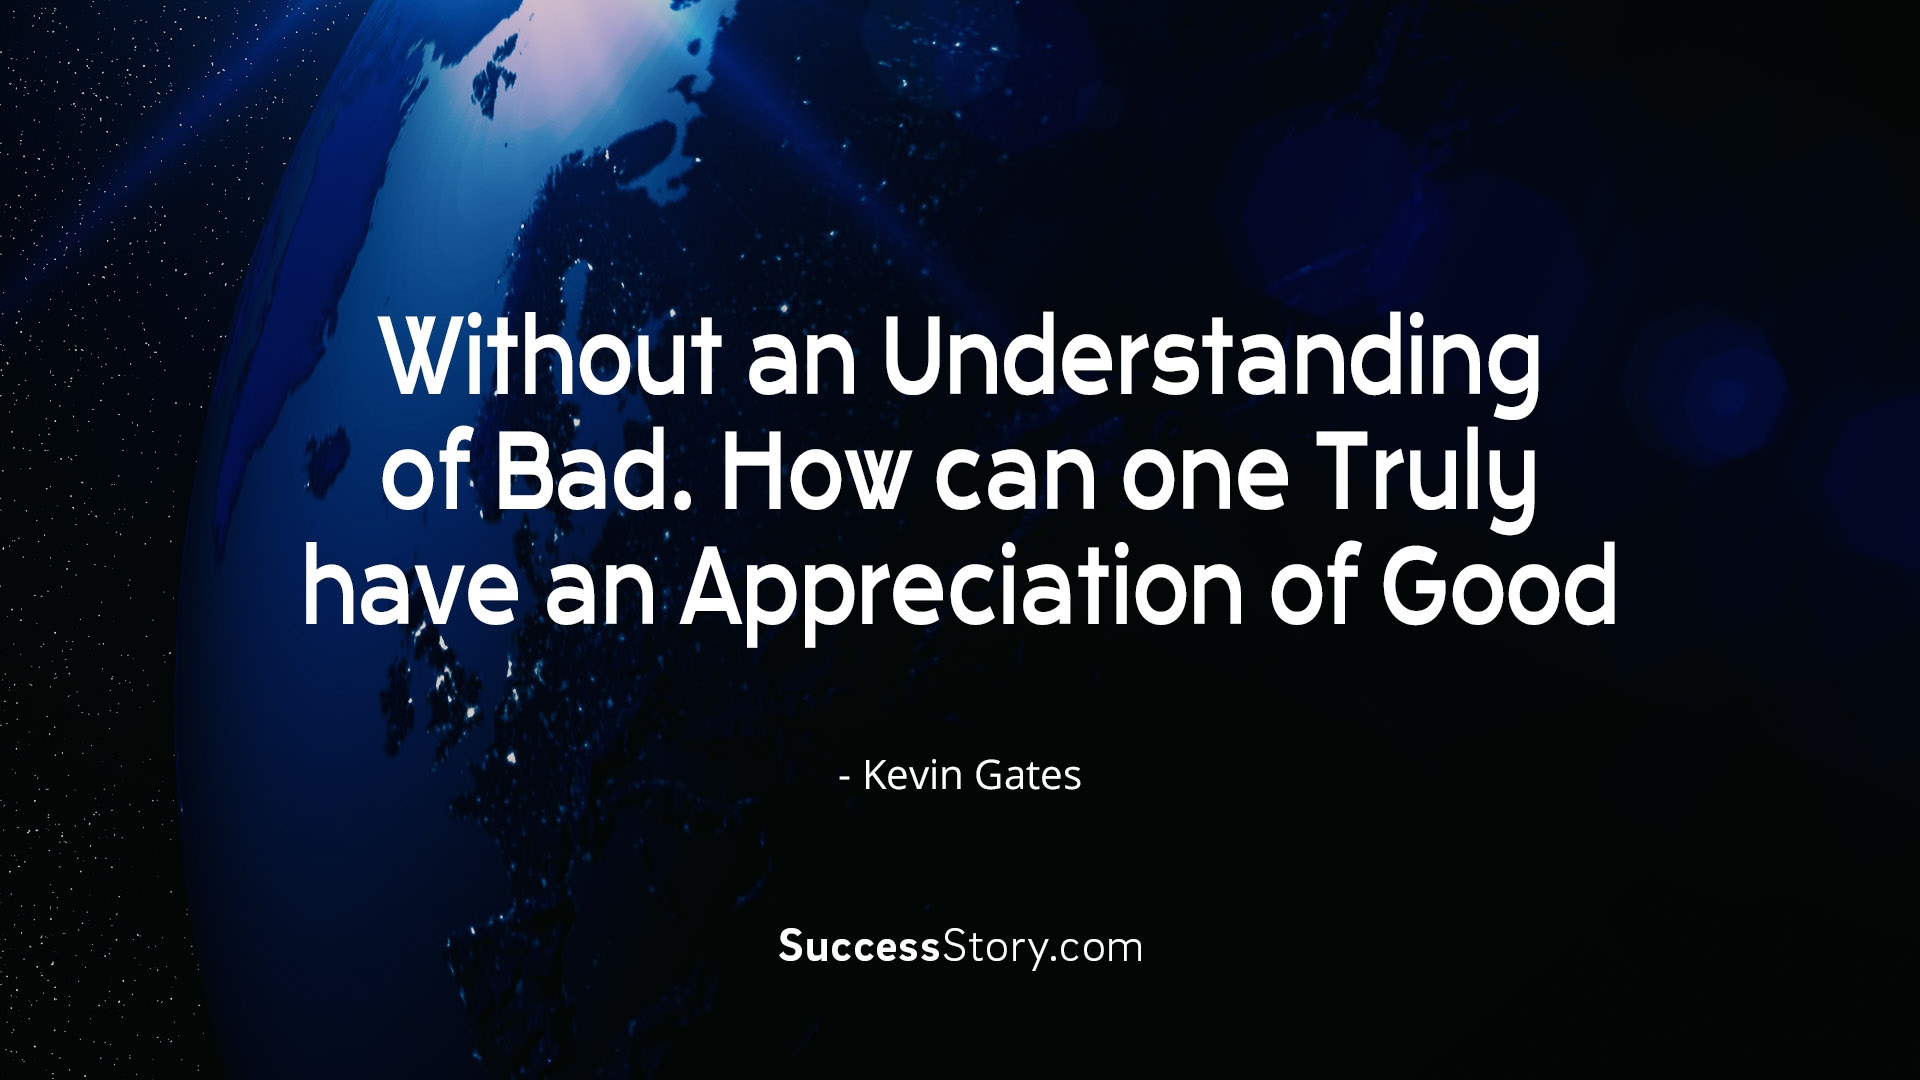 Kevin Gates Love Quotes : 27 Most Inspirational Kevin Gates Quotes SuccessStory - 1920x1080 ...